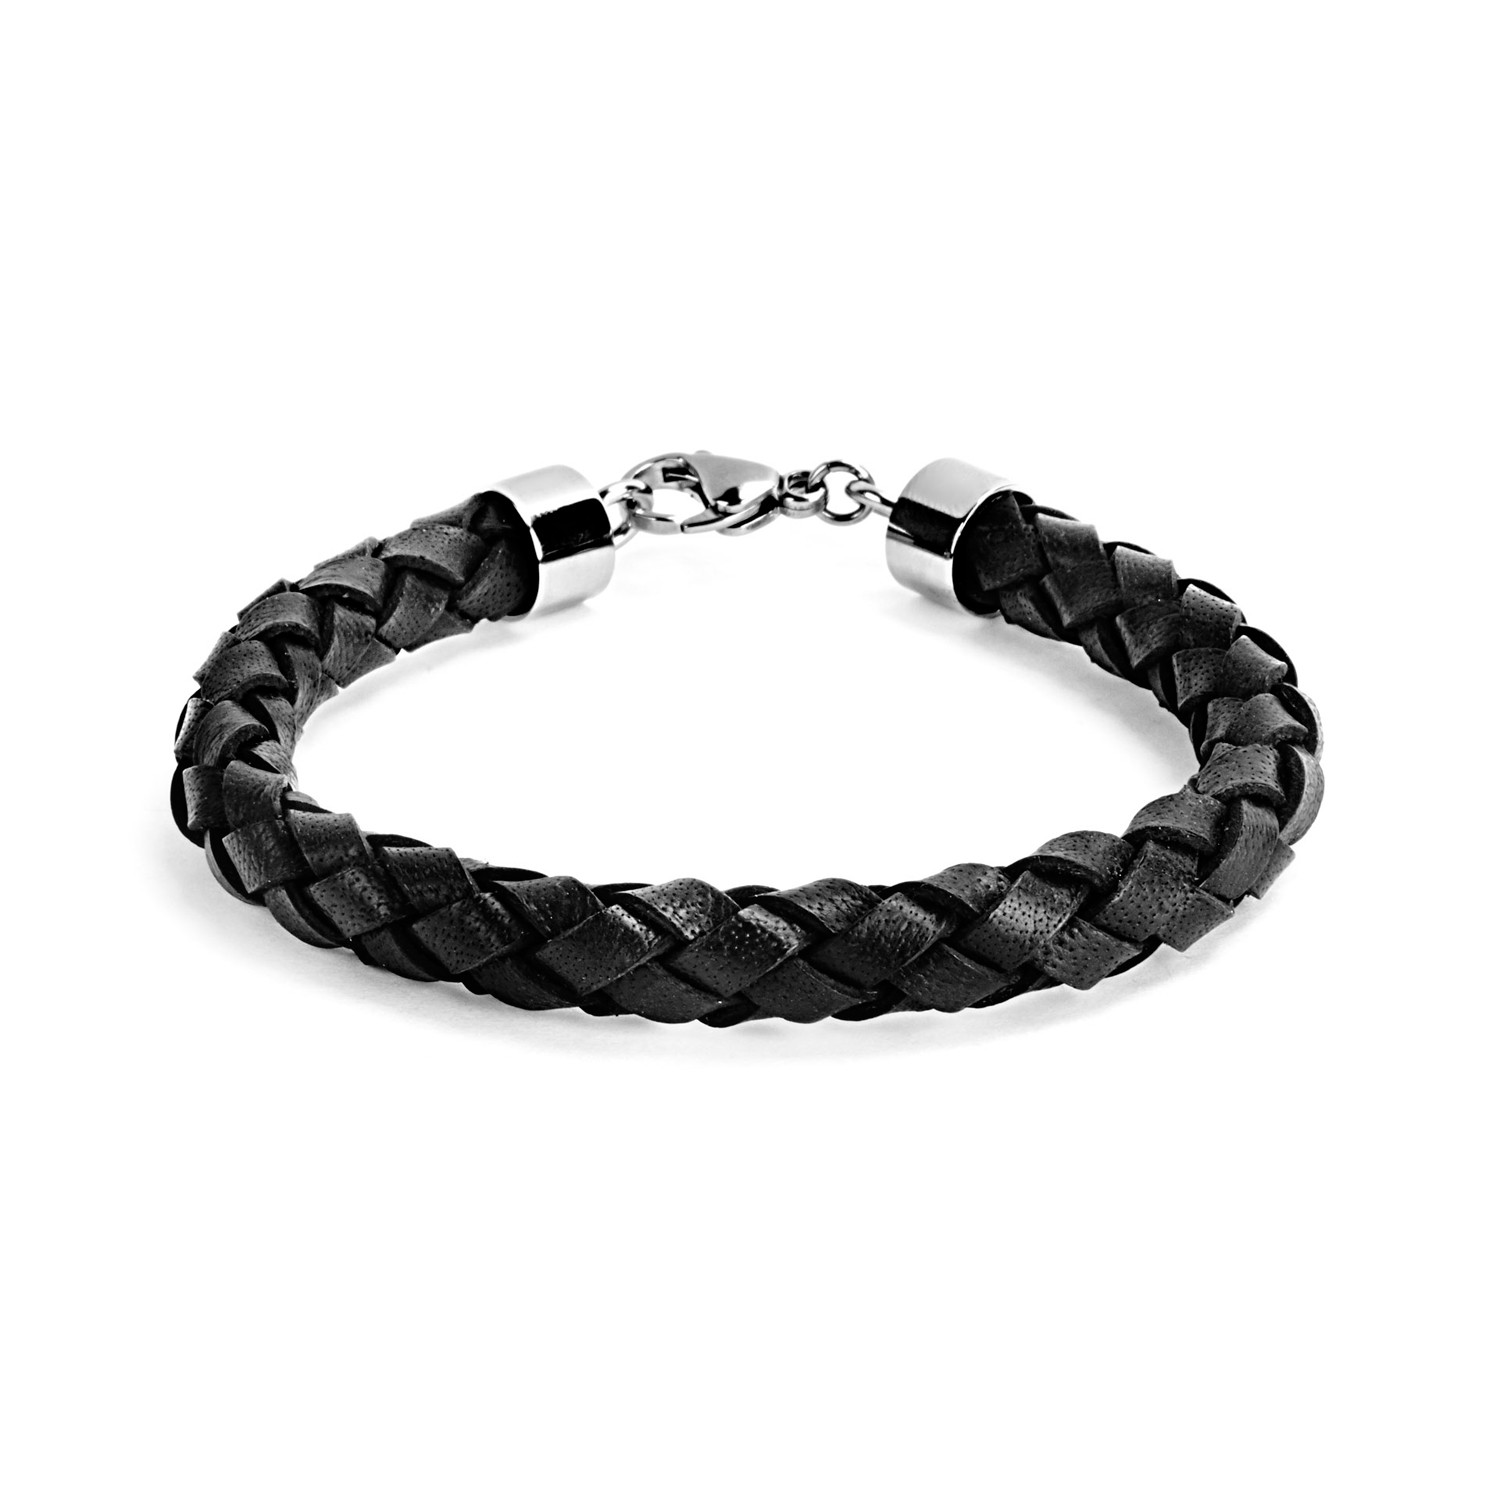 Crucible Braided Leather Men S Bracelet Black